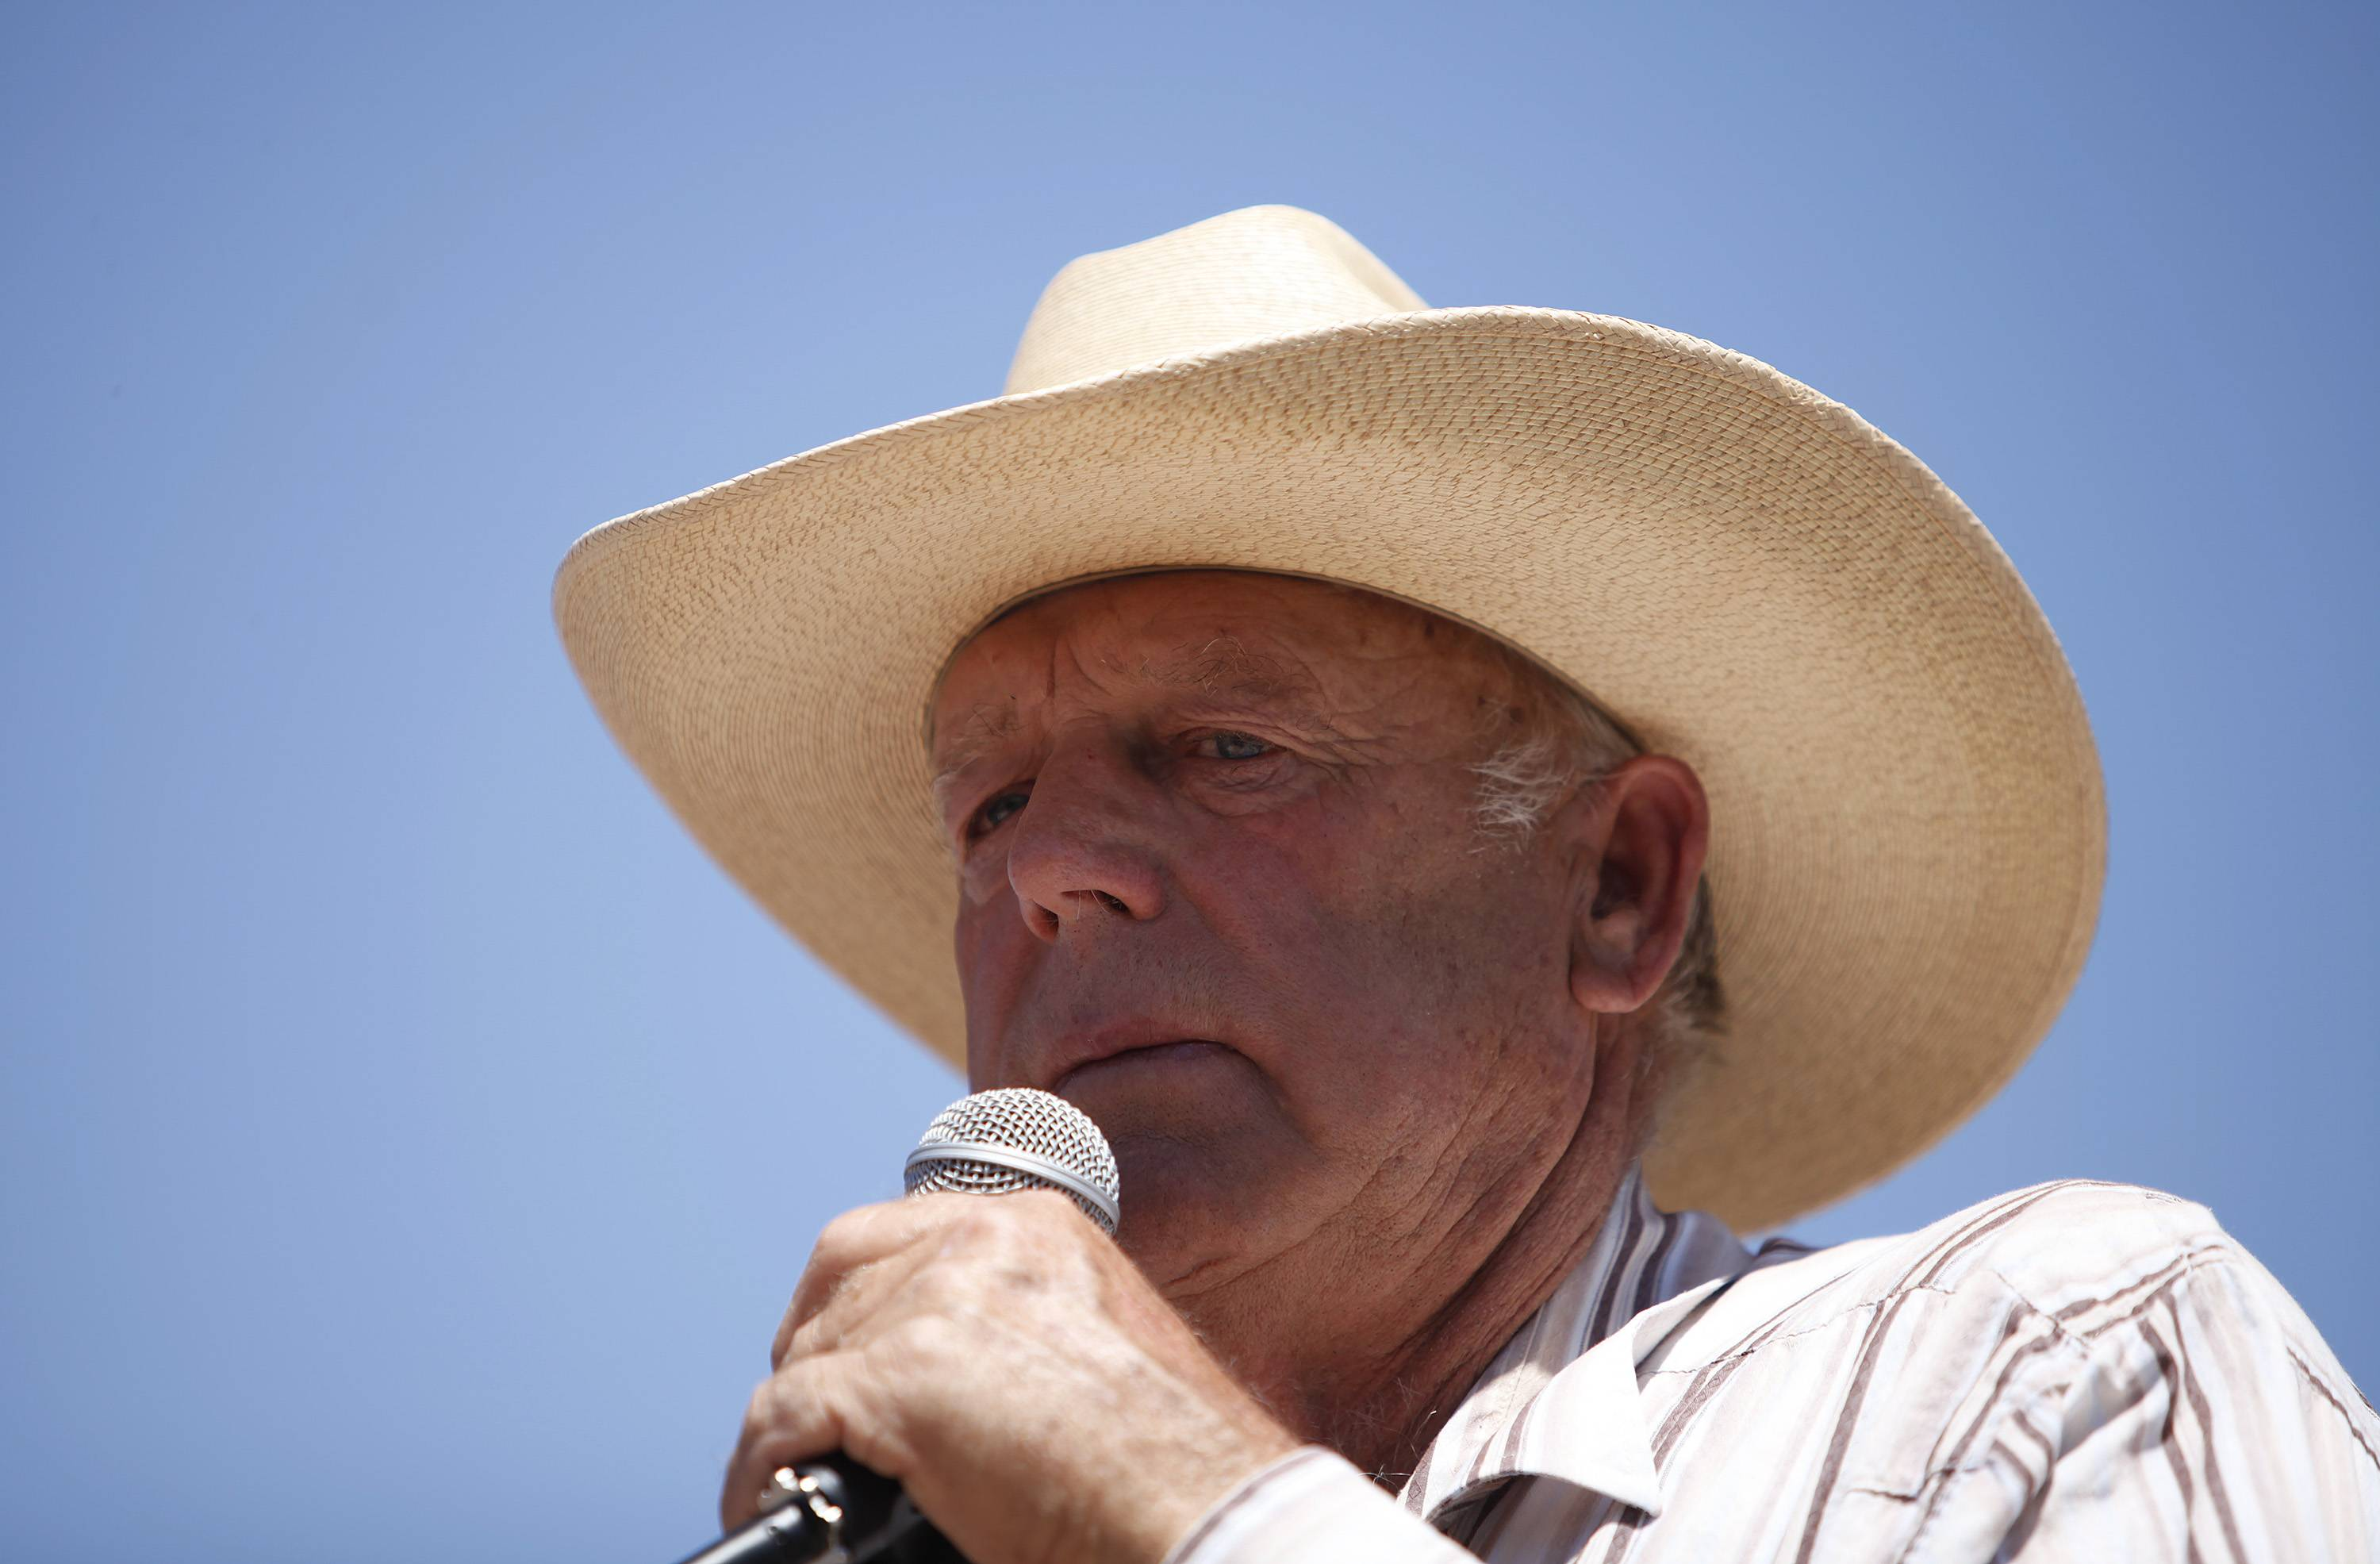 Rancher Cliven Bundy speaks at a news conference near Bunkerville, Nev. U.S. Bureau of Land Management officials say they agree with a Nevada sheriff's position that rancher Bundy must be held accountable for his role in an April standoff between his supporters and the federal agency. Clark County Sheriff Doug Gillespie said Bundy crossed the line when he allowed states' rights supporters, including self-proclaimed militia members, onto his property to aim guns at police.